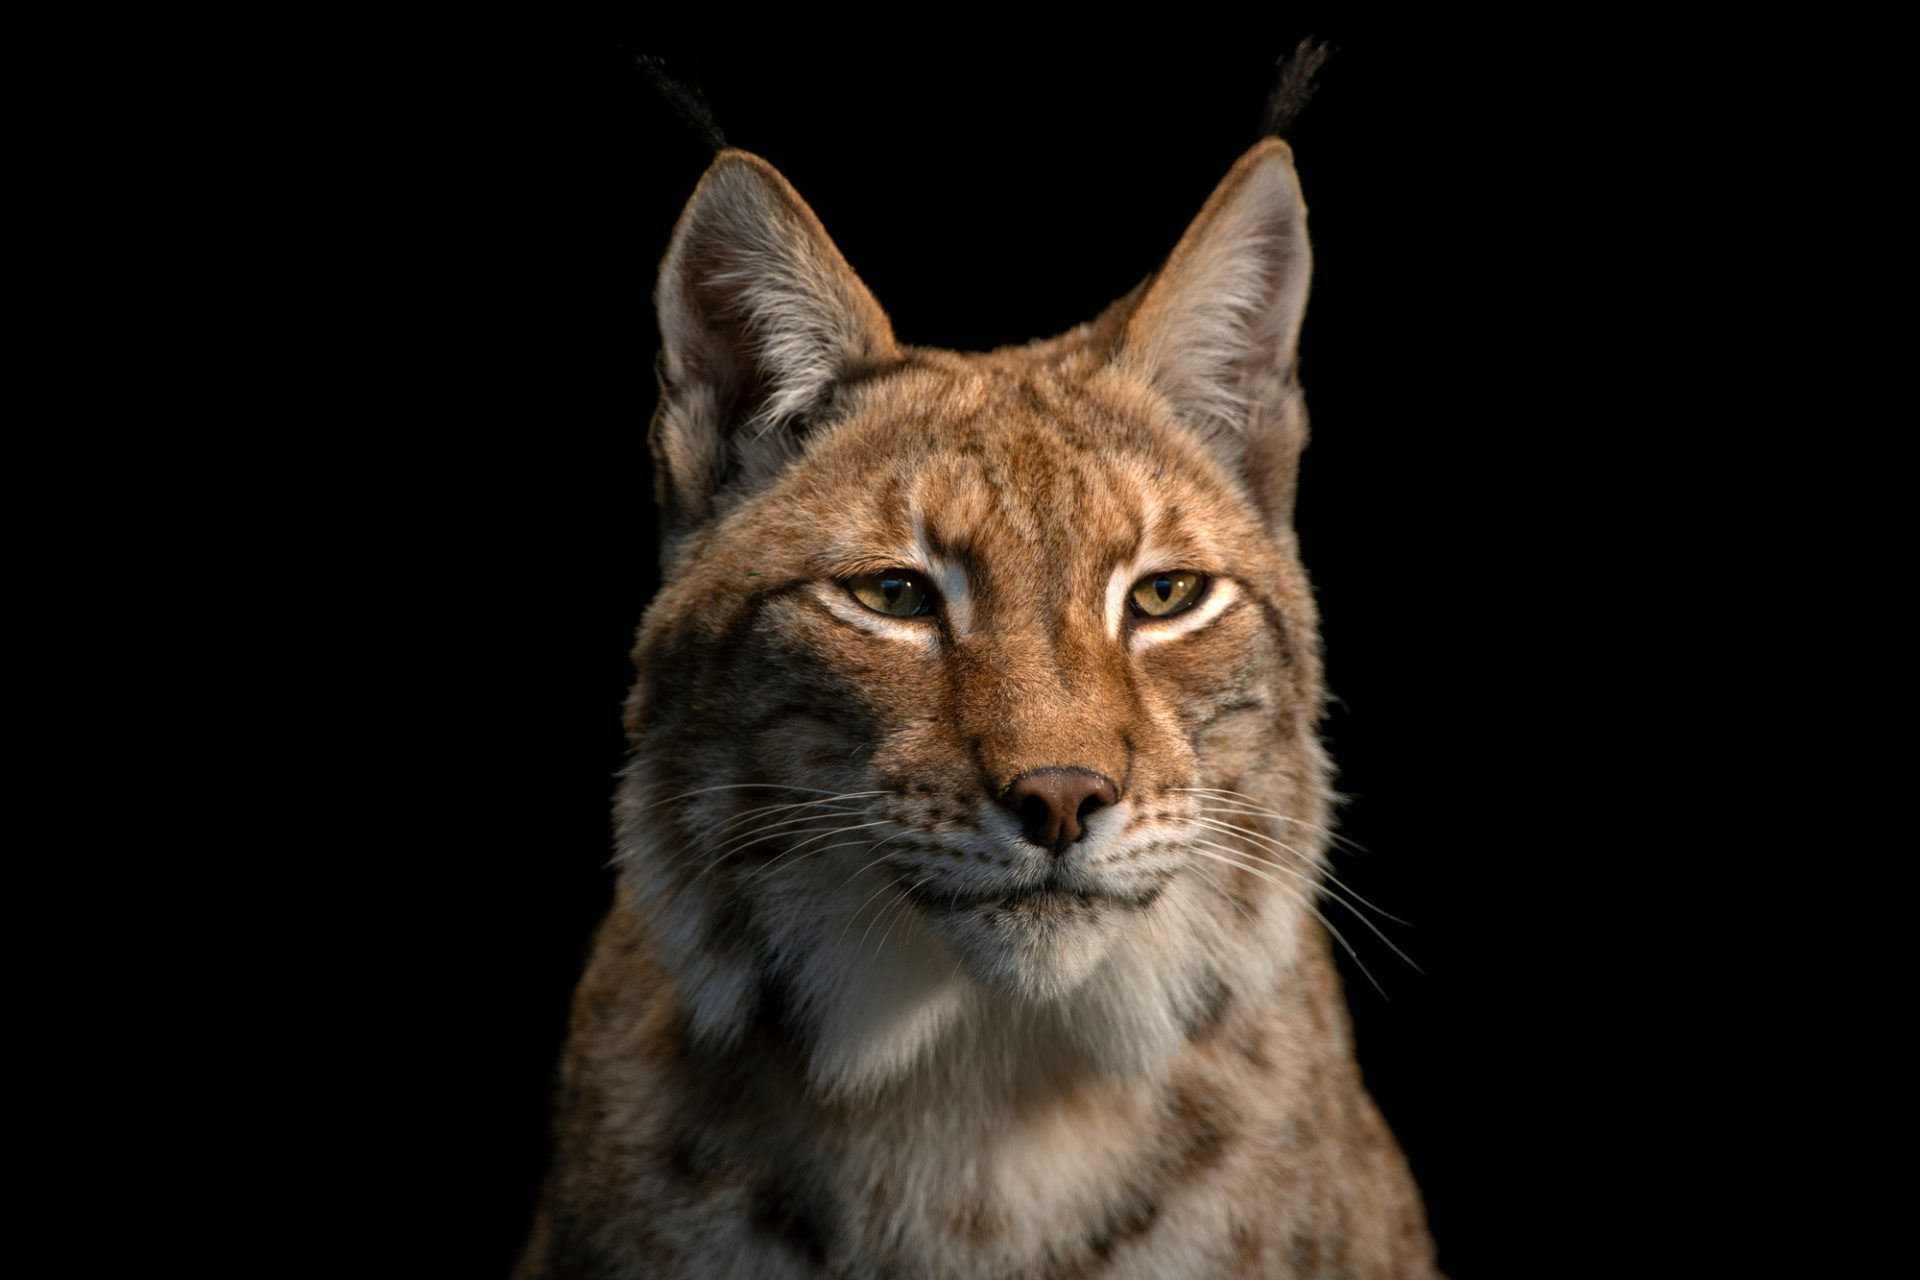 Photo: Sika, a Northern lynx (Lynx lynx lynx) at the Lisbon Zoo.